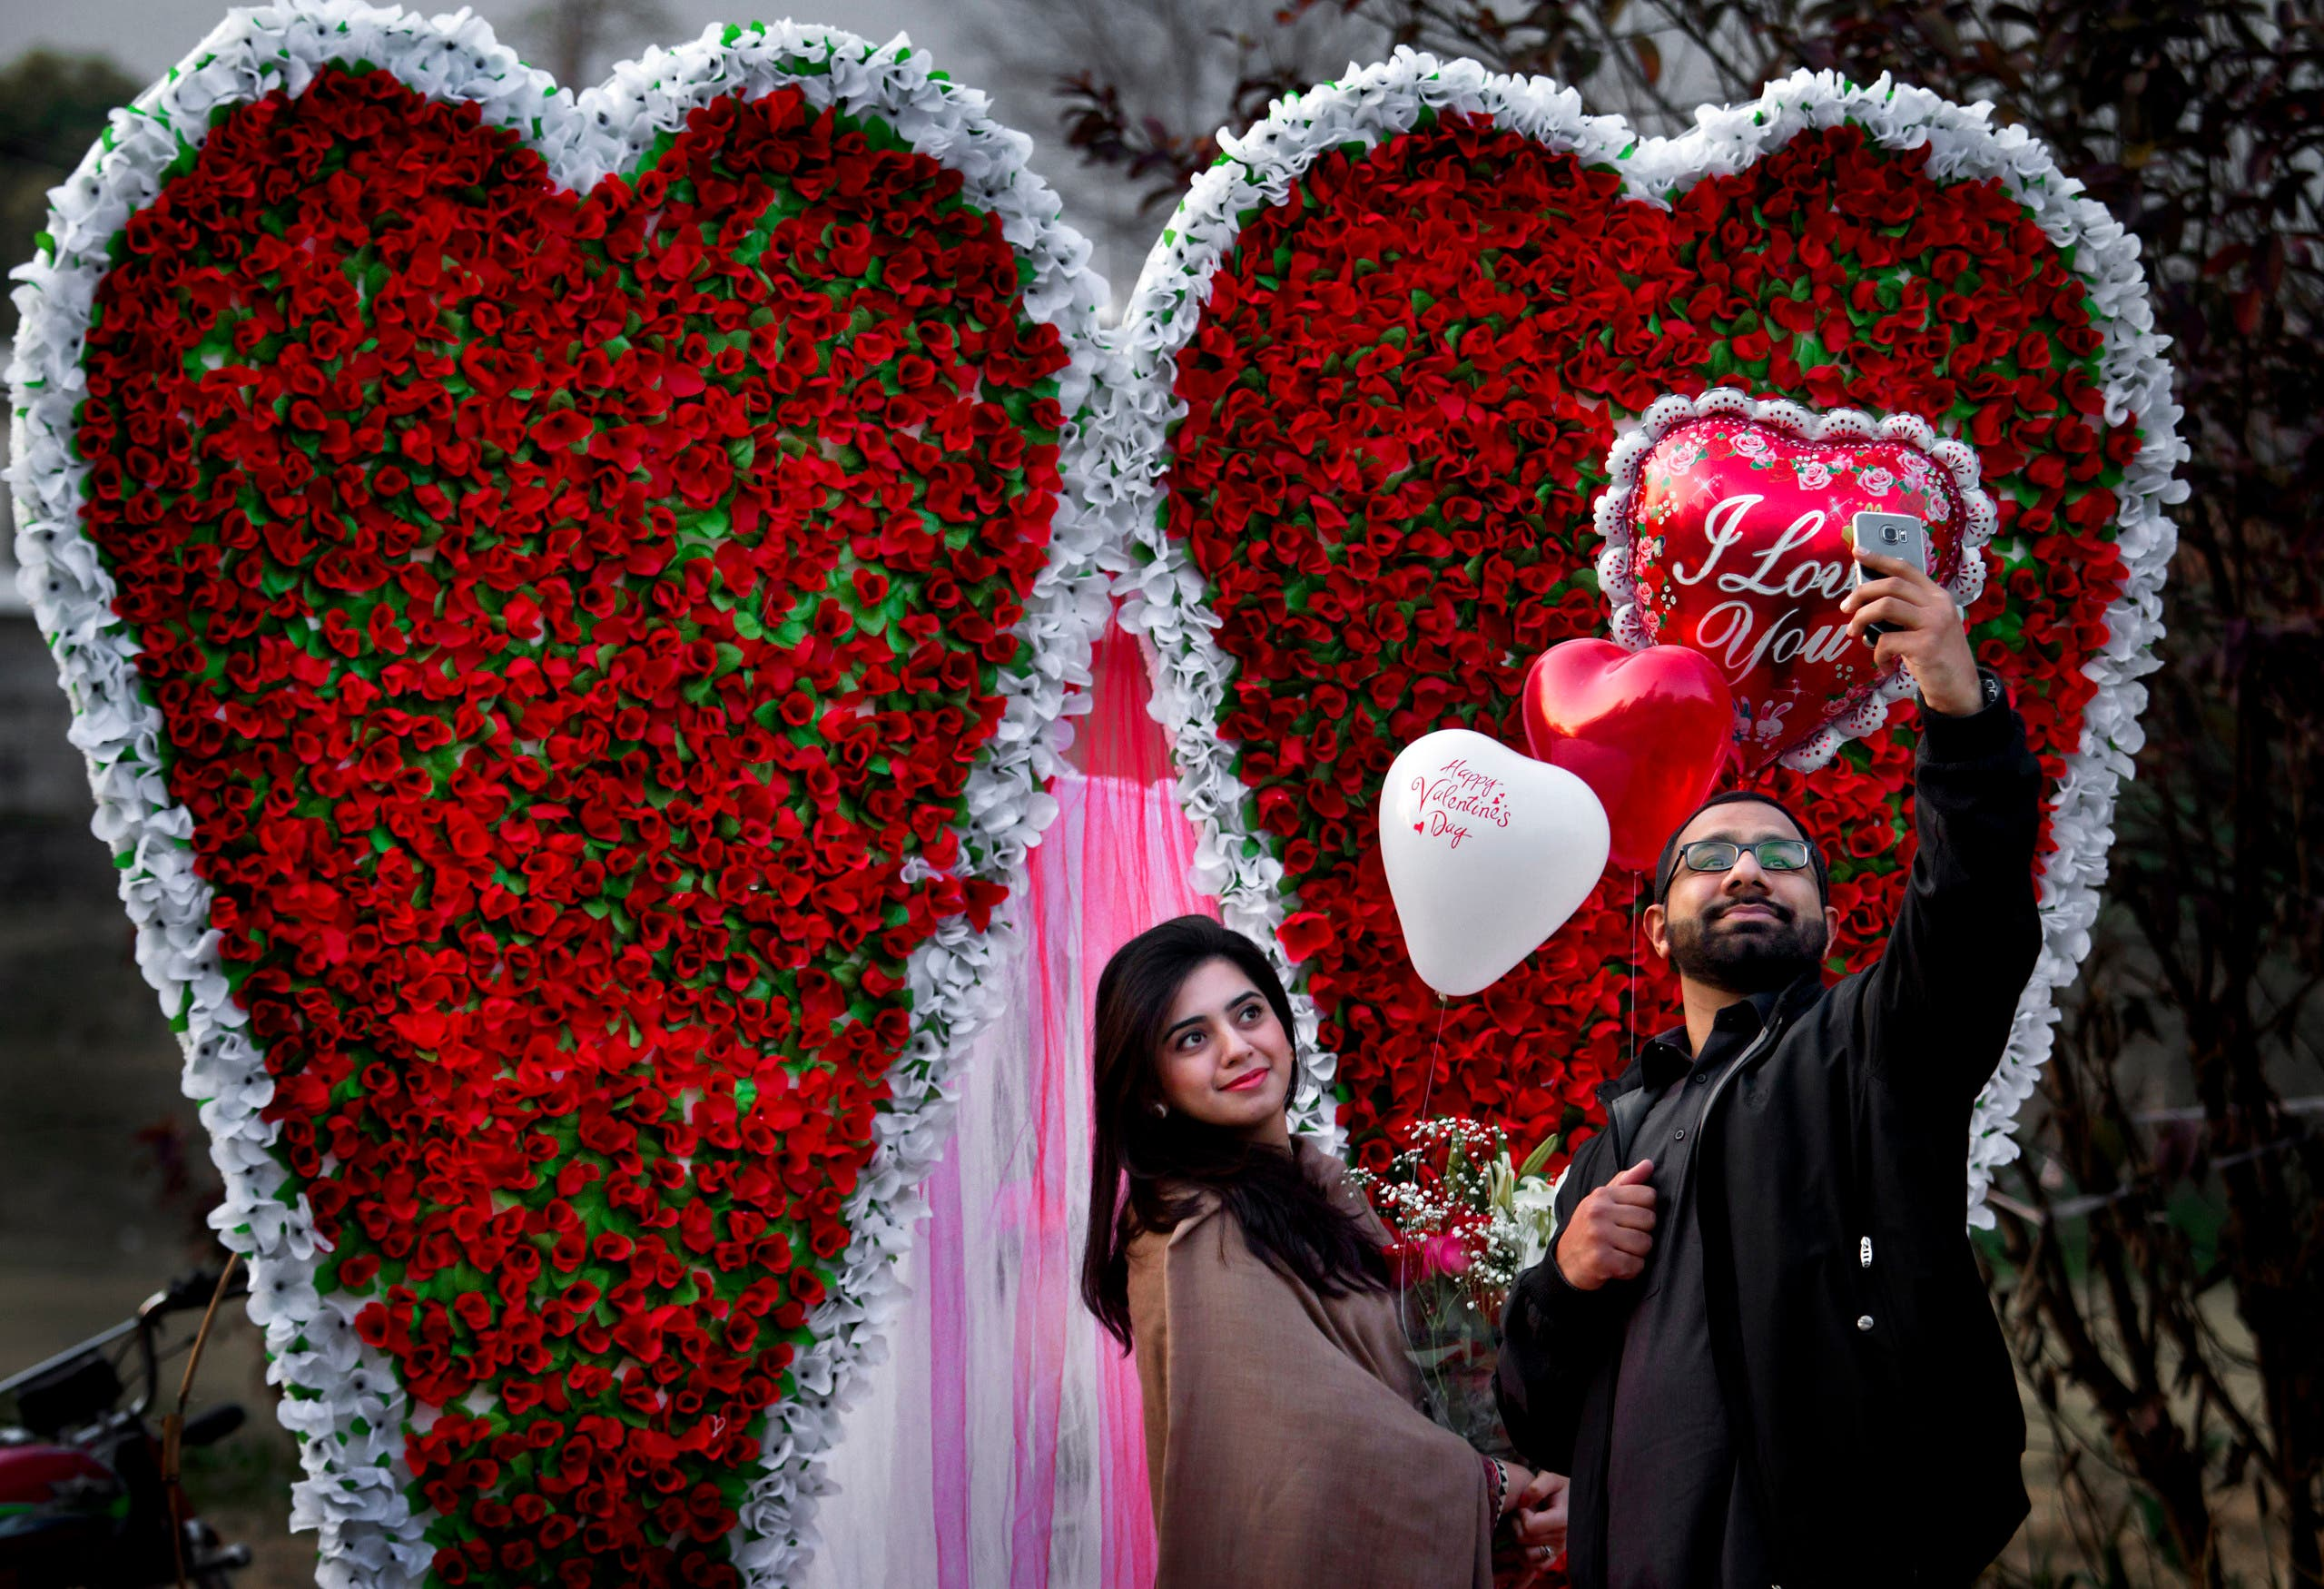 A couple take 'selfie' in front of a giant heart-shaped bouquet display by a vendor to attract customers on Valentine's Day, Sunday, Feb. 14, 2016. (AP)